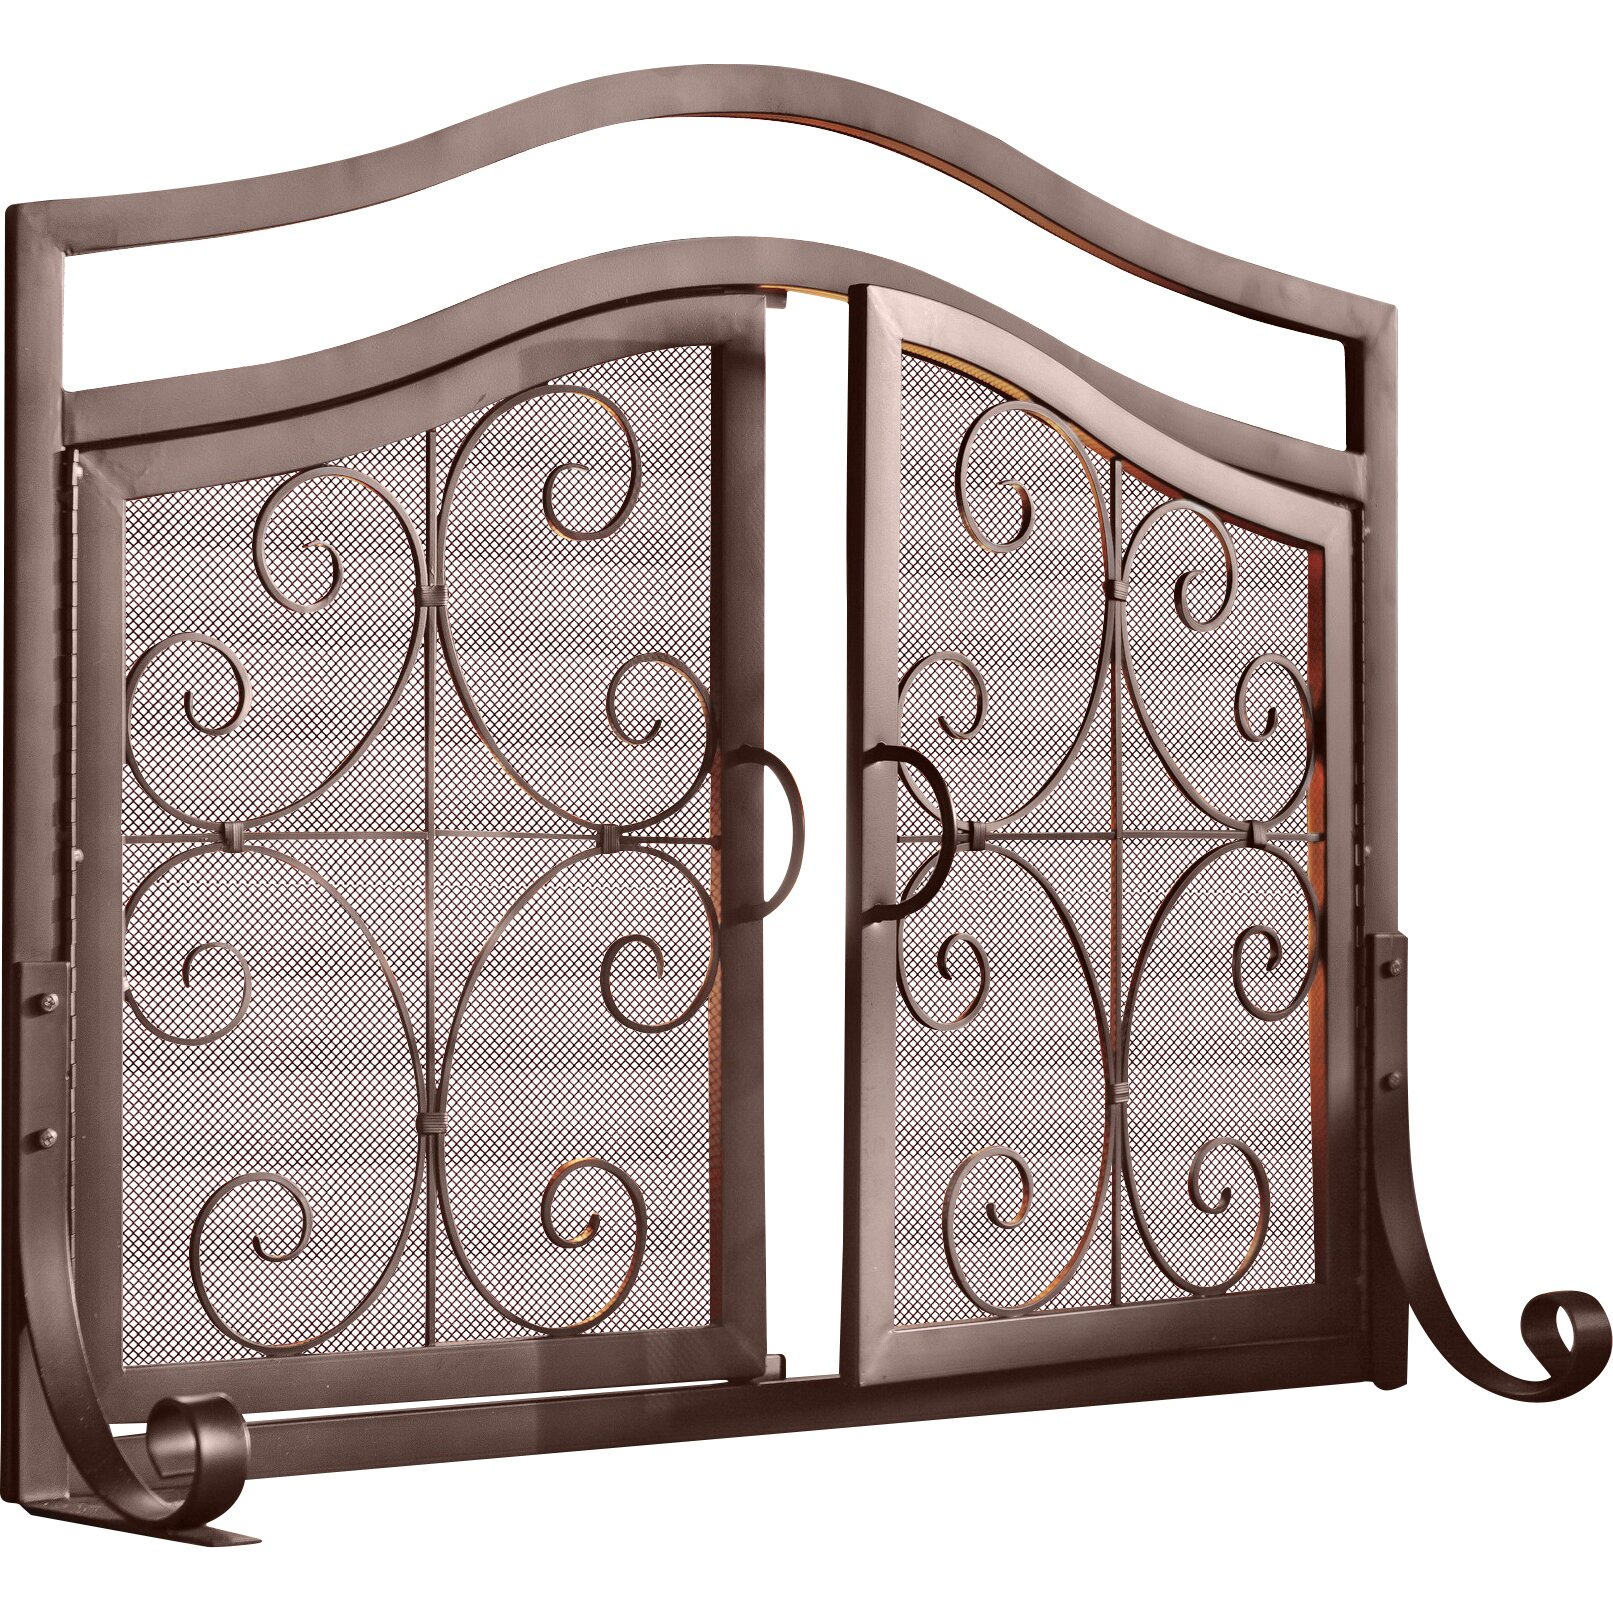 plow hearth small crest fireplace screen with doors reviews